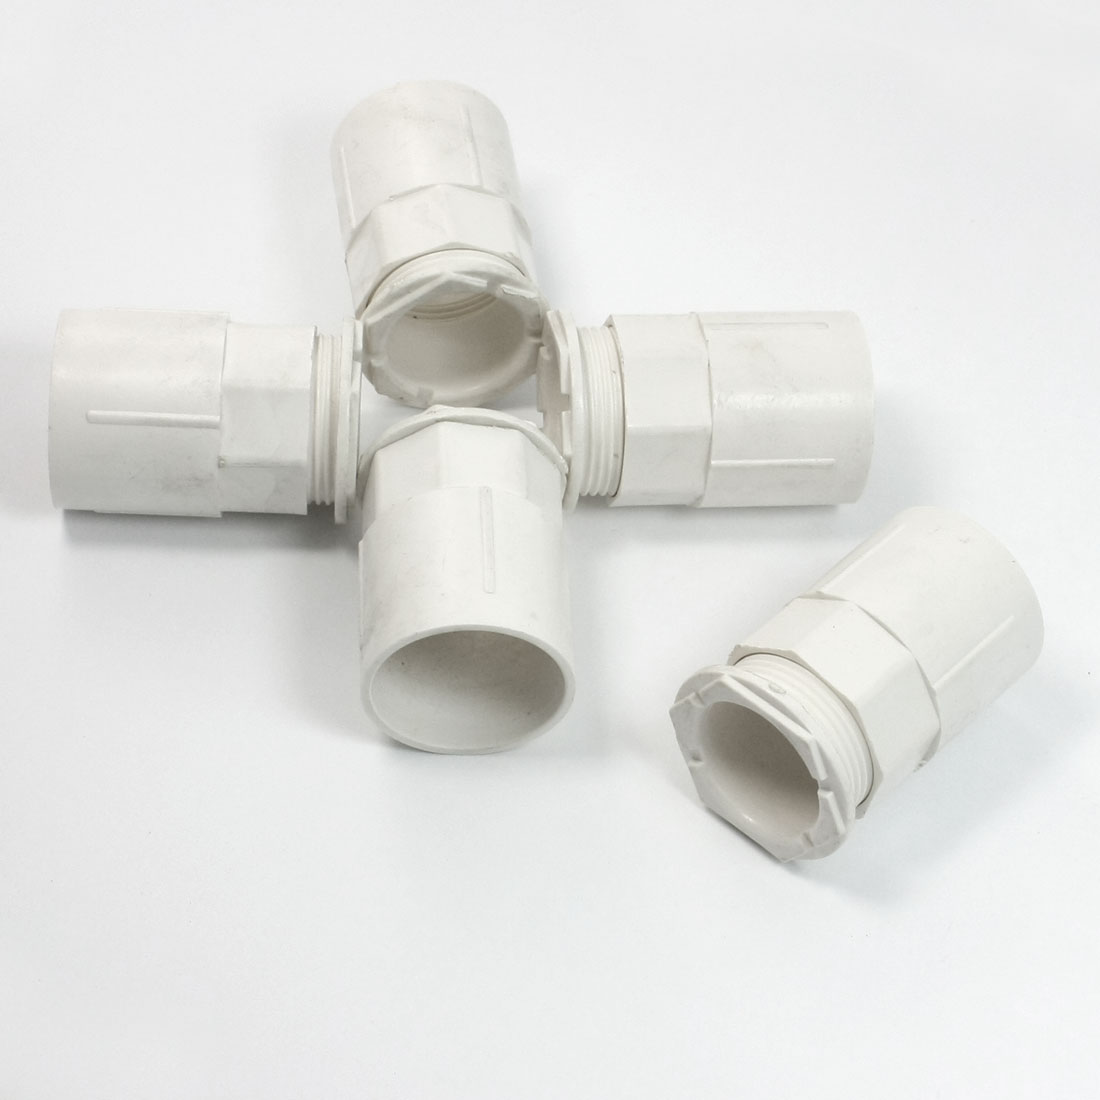 5 Pcs 32mm Inner Dia. Straight Fittings PVC Pipe Connectors White